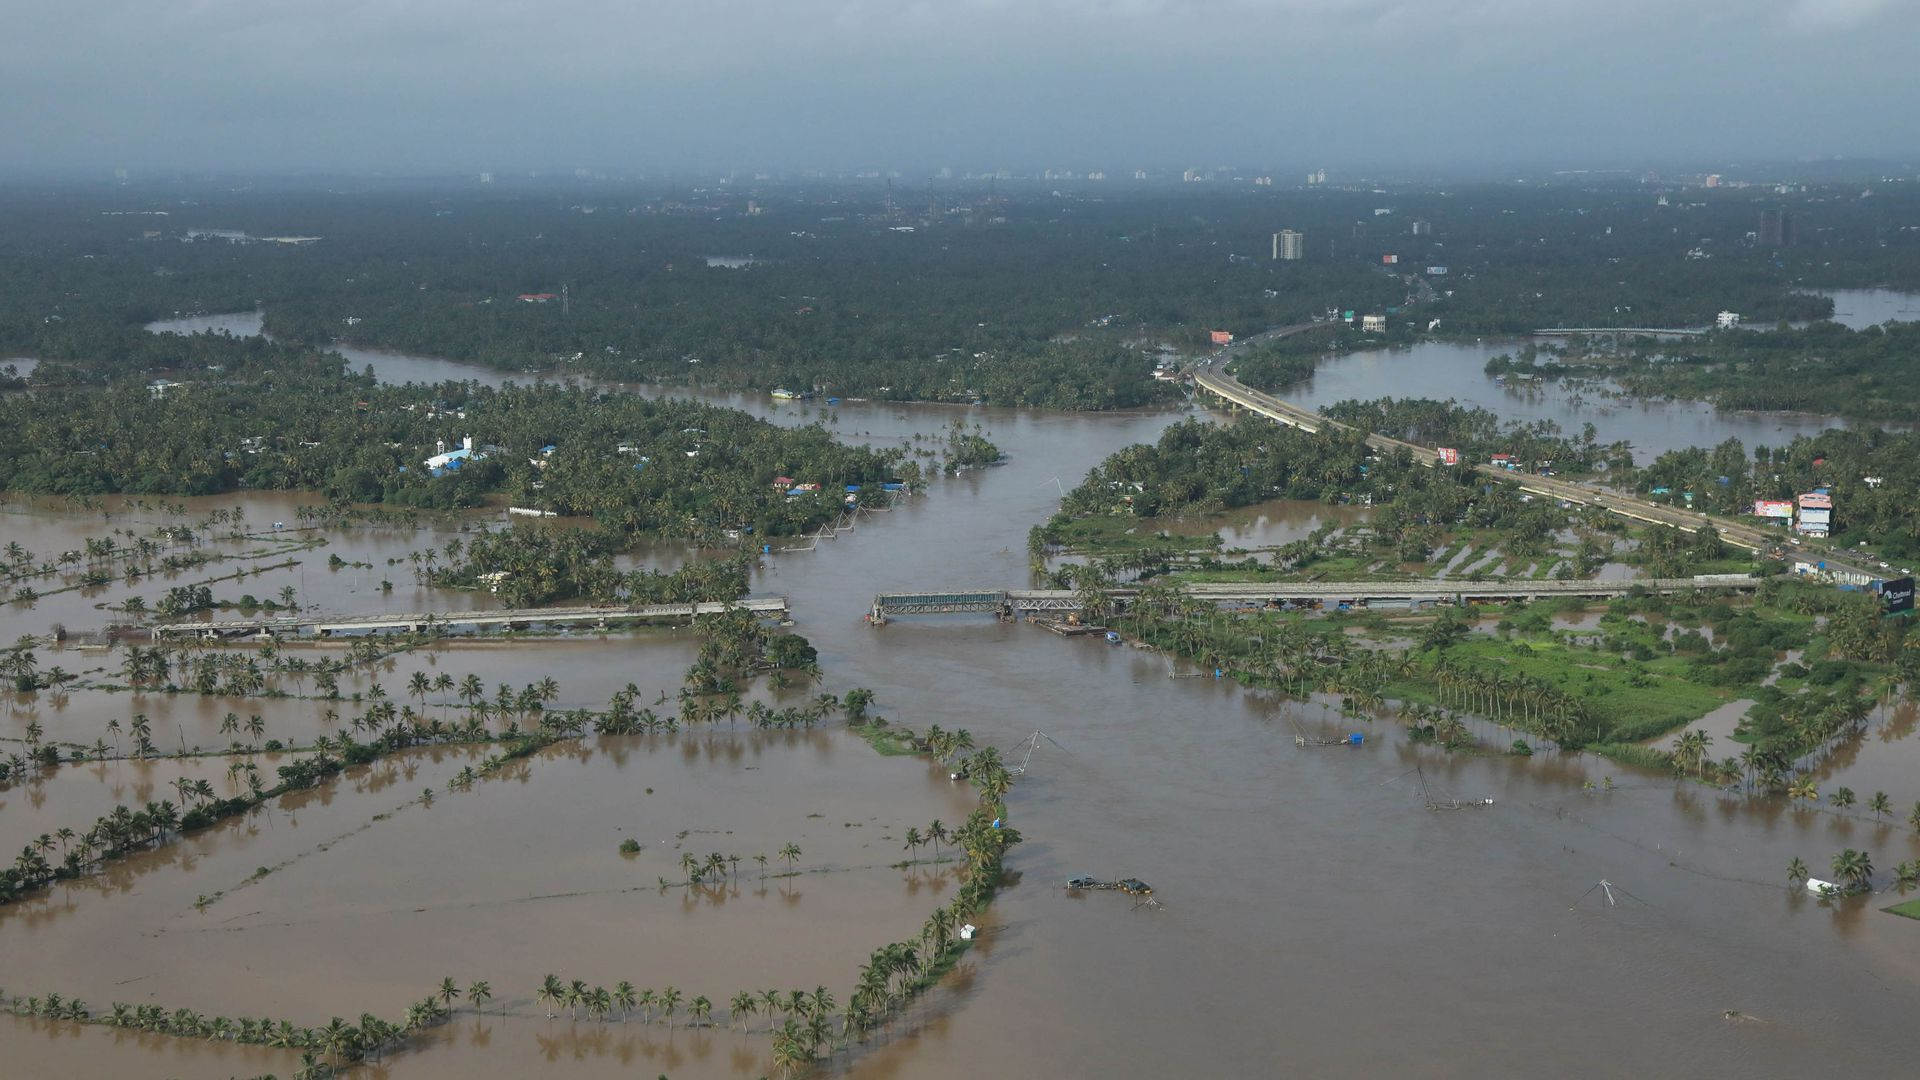 Aerial view of flooded area in the north part of Kochi, in the Indian state of Kerala on Saturday. Photo: AFP/Getty Images